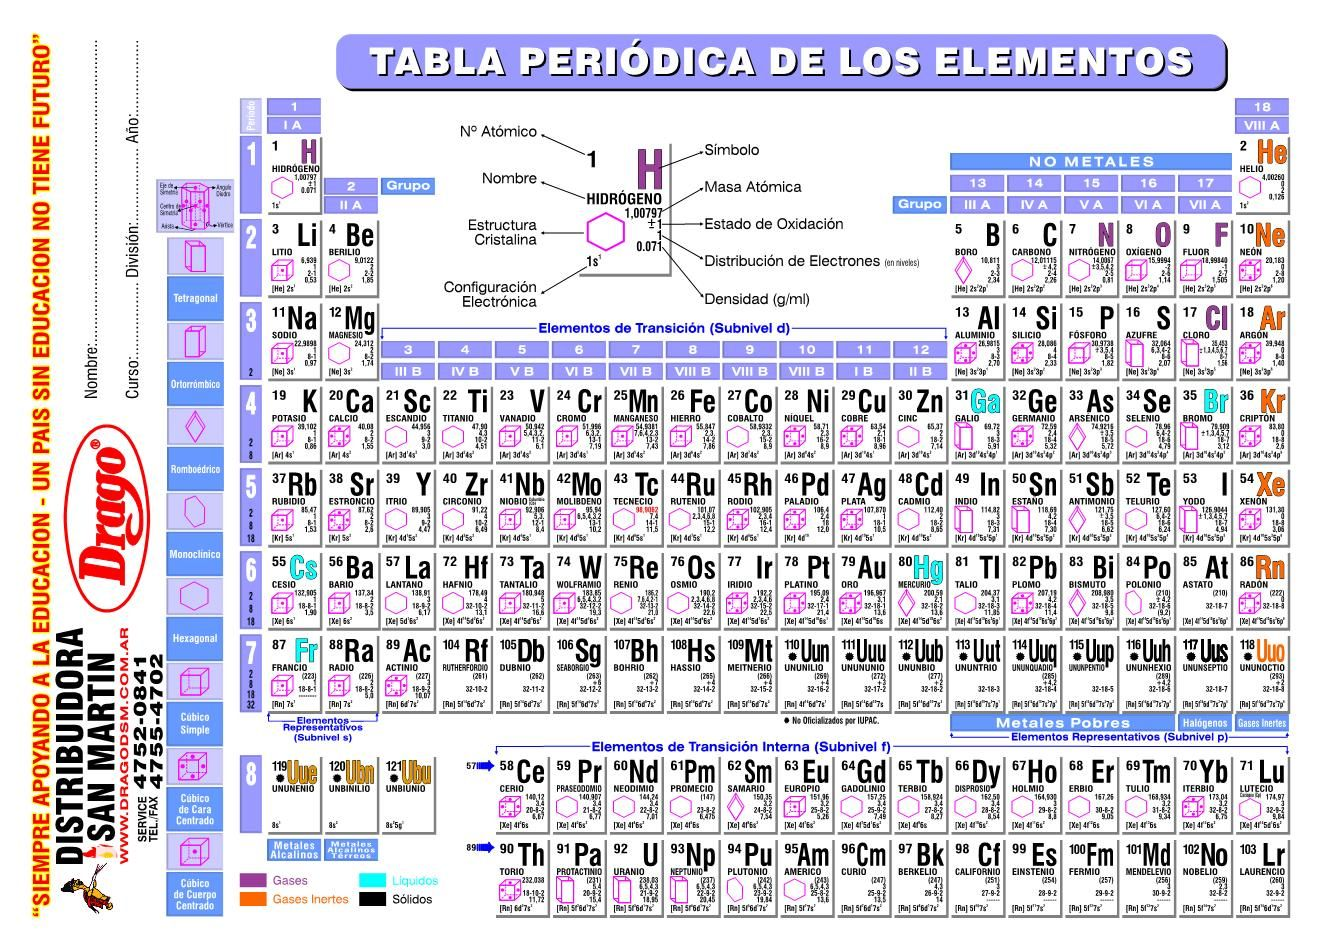 Tabla periodica completa pdf 2015 choice image periodic table and tabla periodica mas completa para imprimir gallery periodic table tabla periodica completa pdf 2015 gallery periodic urtaz Gallery